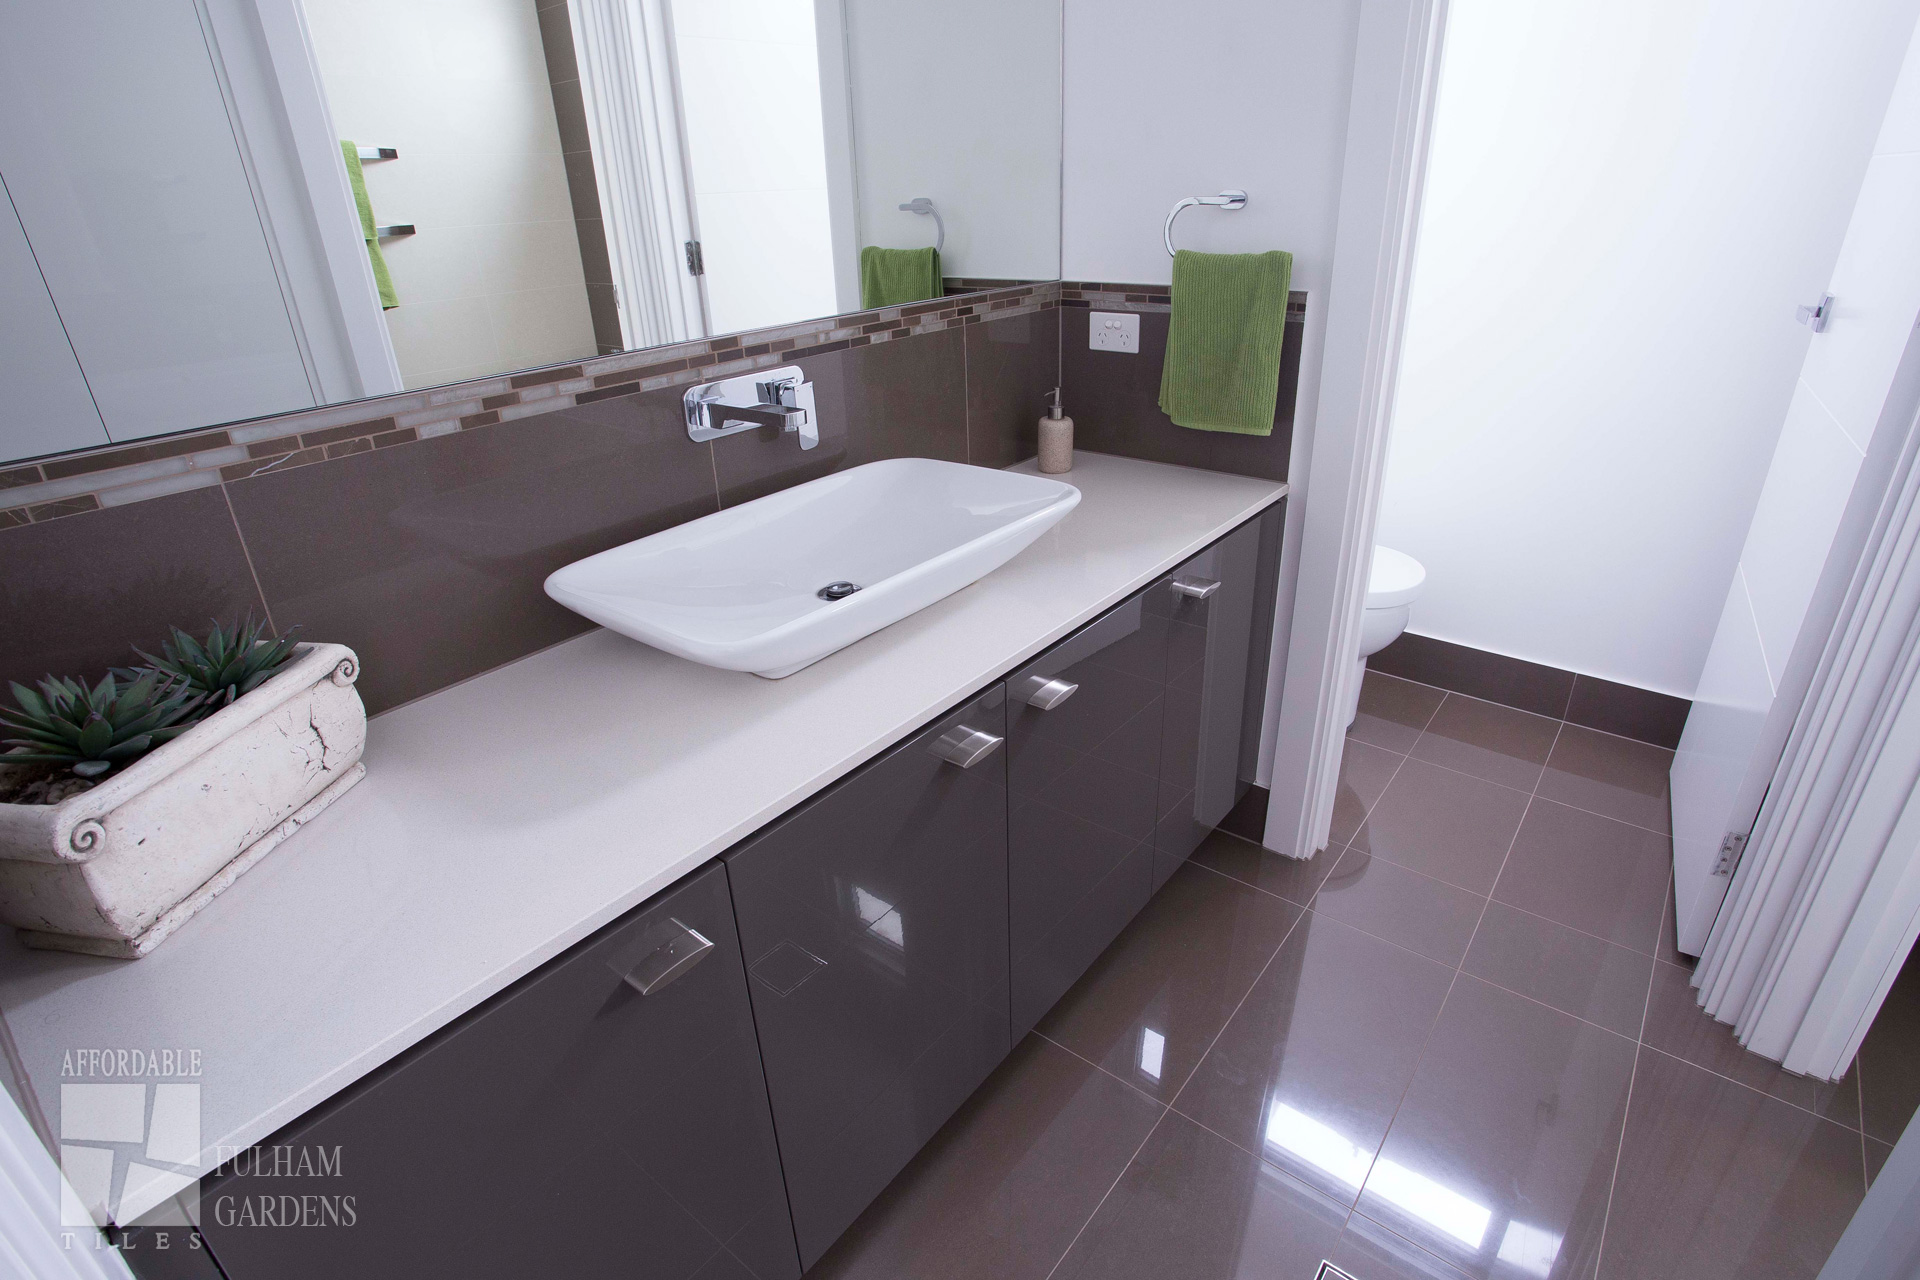 Bathroom Products Bathroom Products And Services Affordable Tiles Adelaide